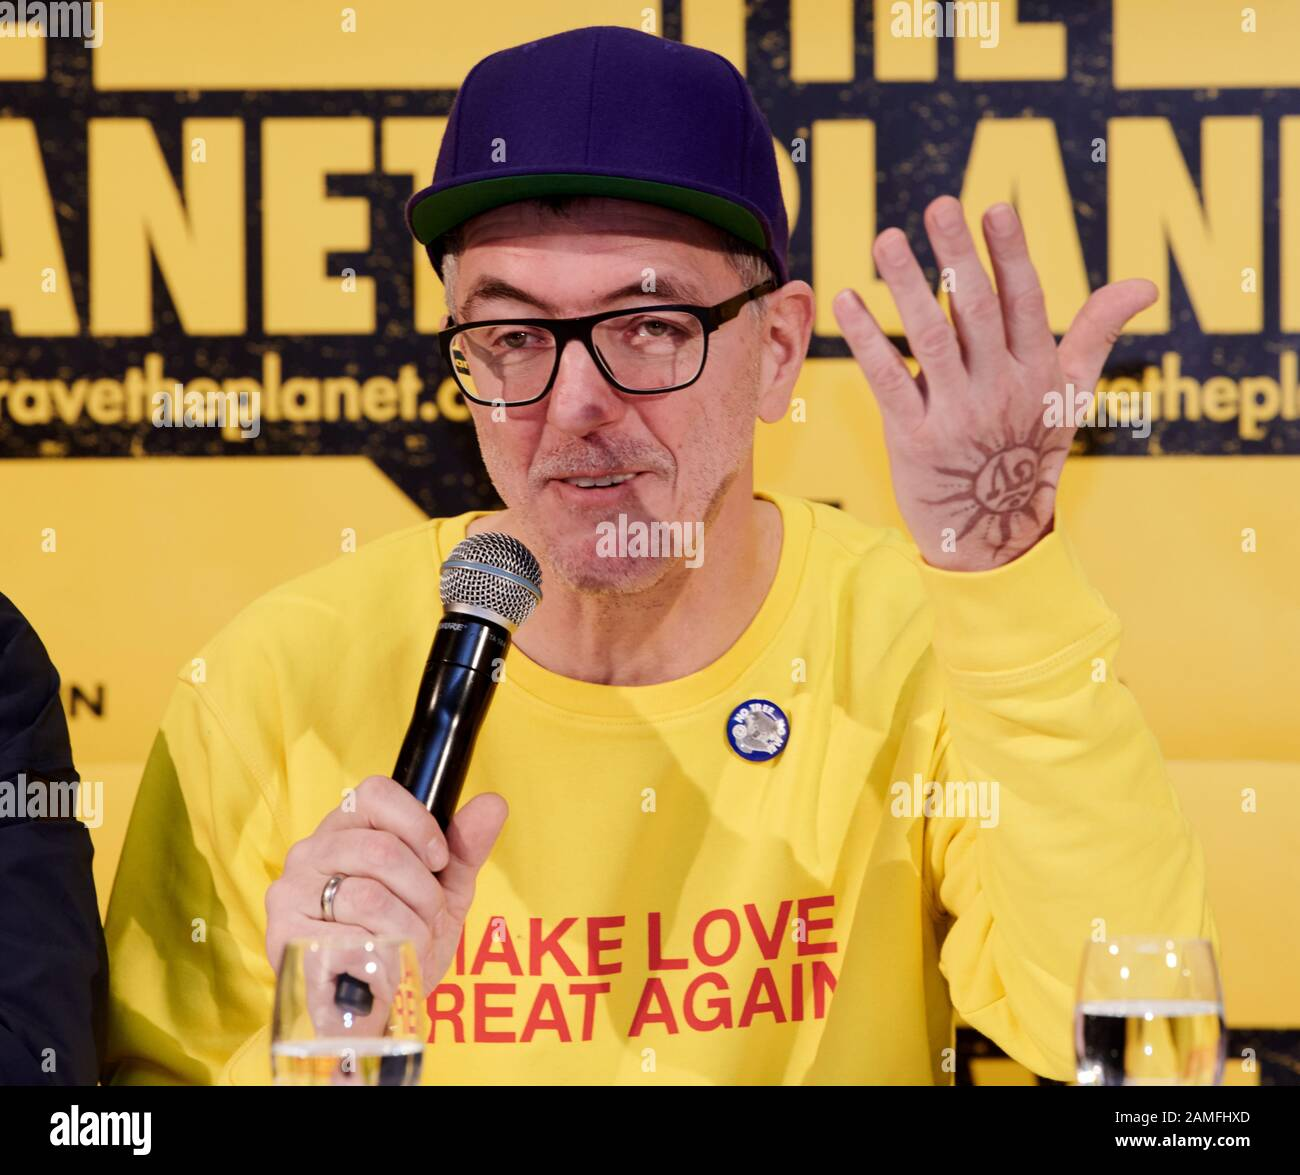 Berlin Germany 13th Jan 2020 Loveparade Founder Dr Motte Presents His New Project He And His Team From The Non Profit Limited Company Rave The Planet Want To Collect Donations The Aim Is